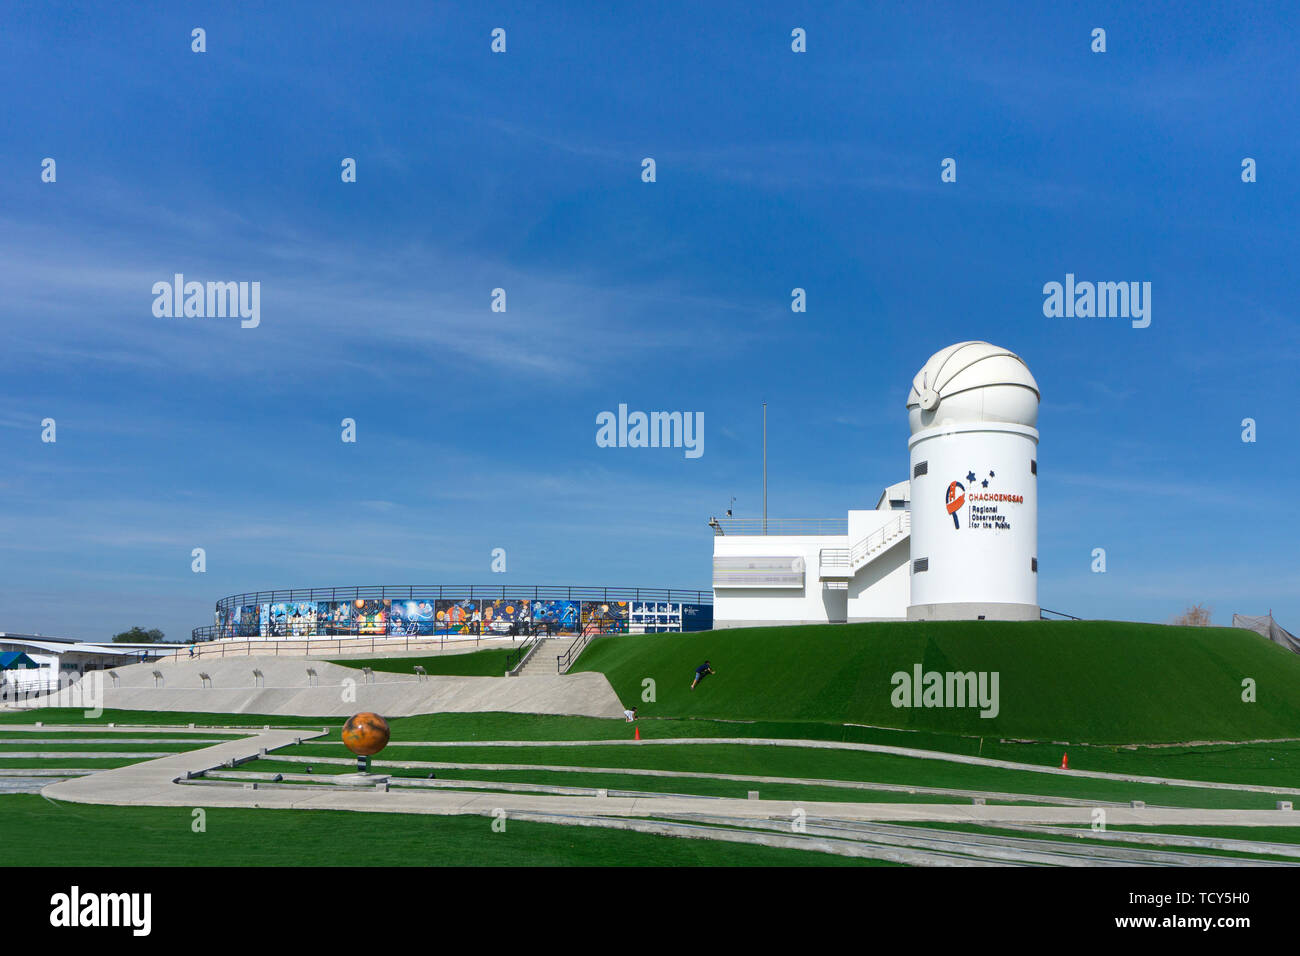 Chachoengsao, Thailand-December 15, 2018: Regional Observatory for the Public, Places to learn about astronomy. - Stock Image